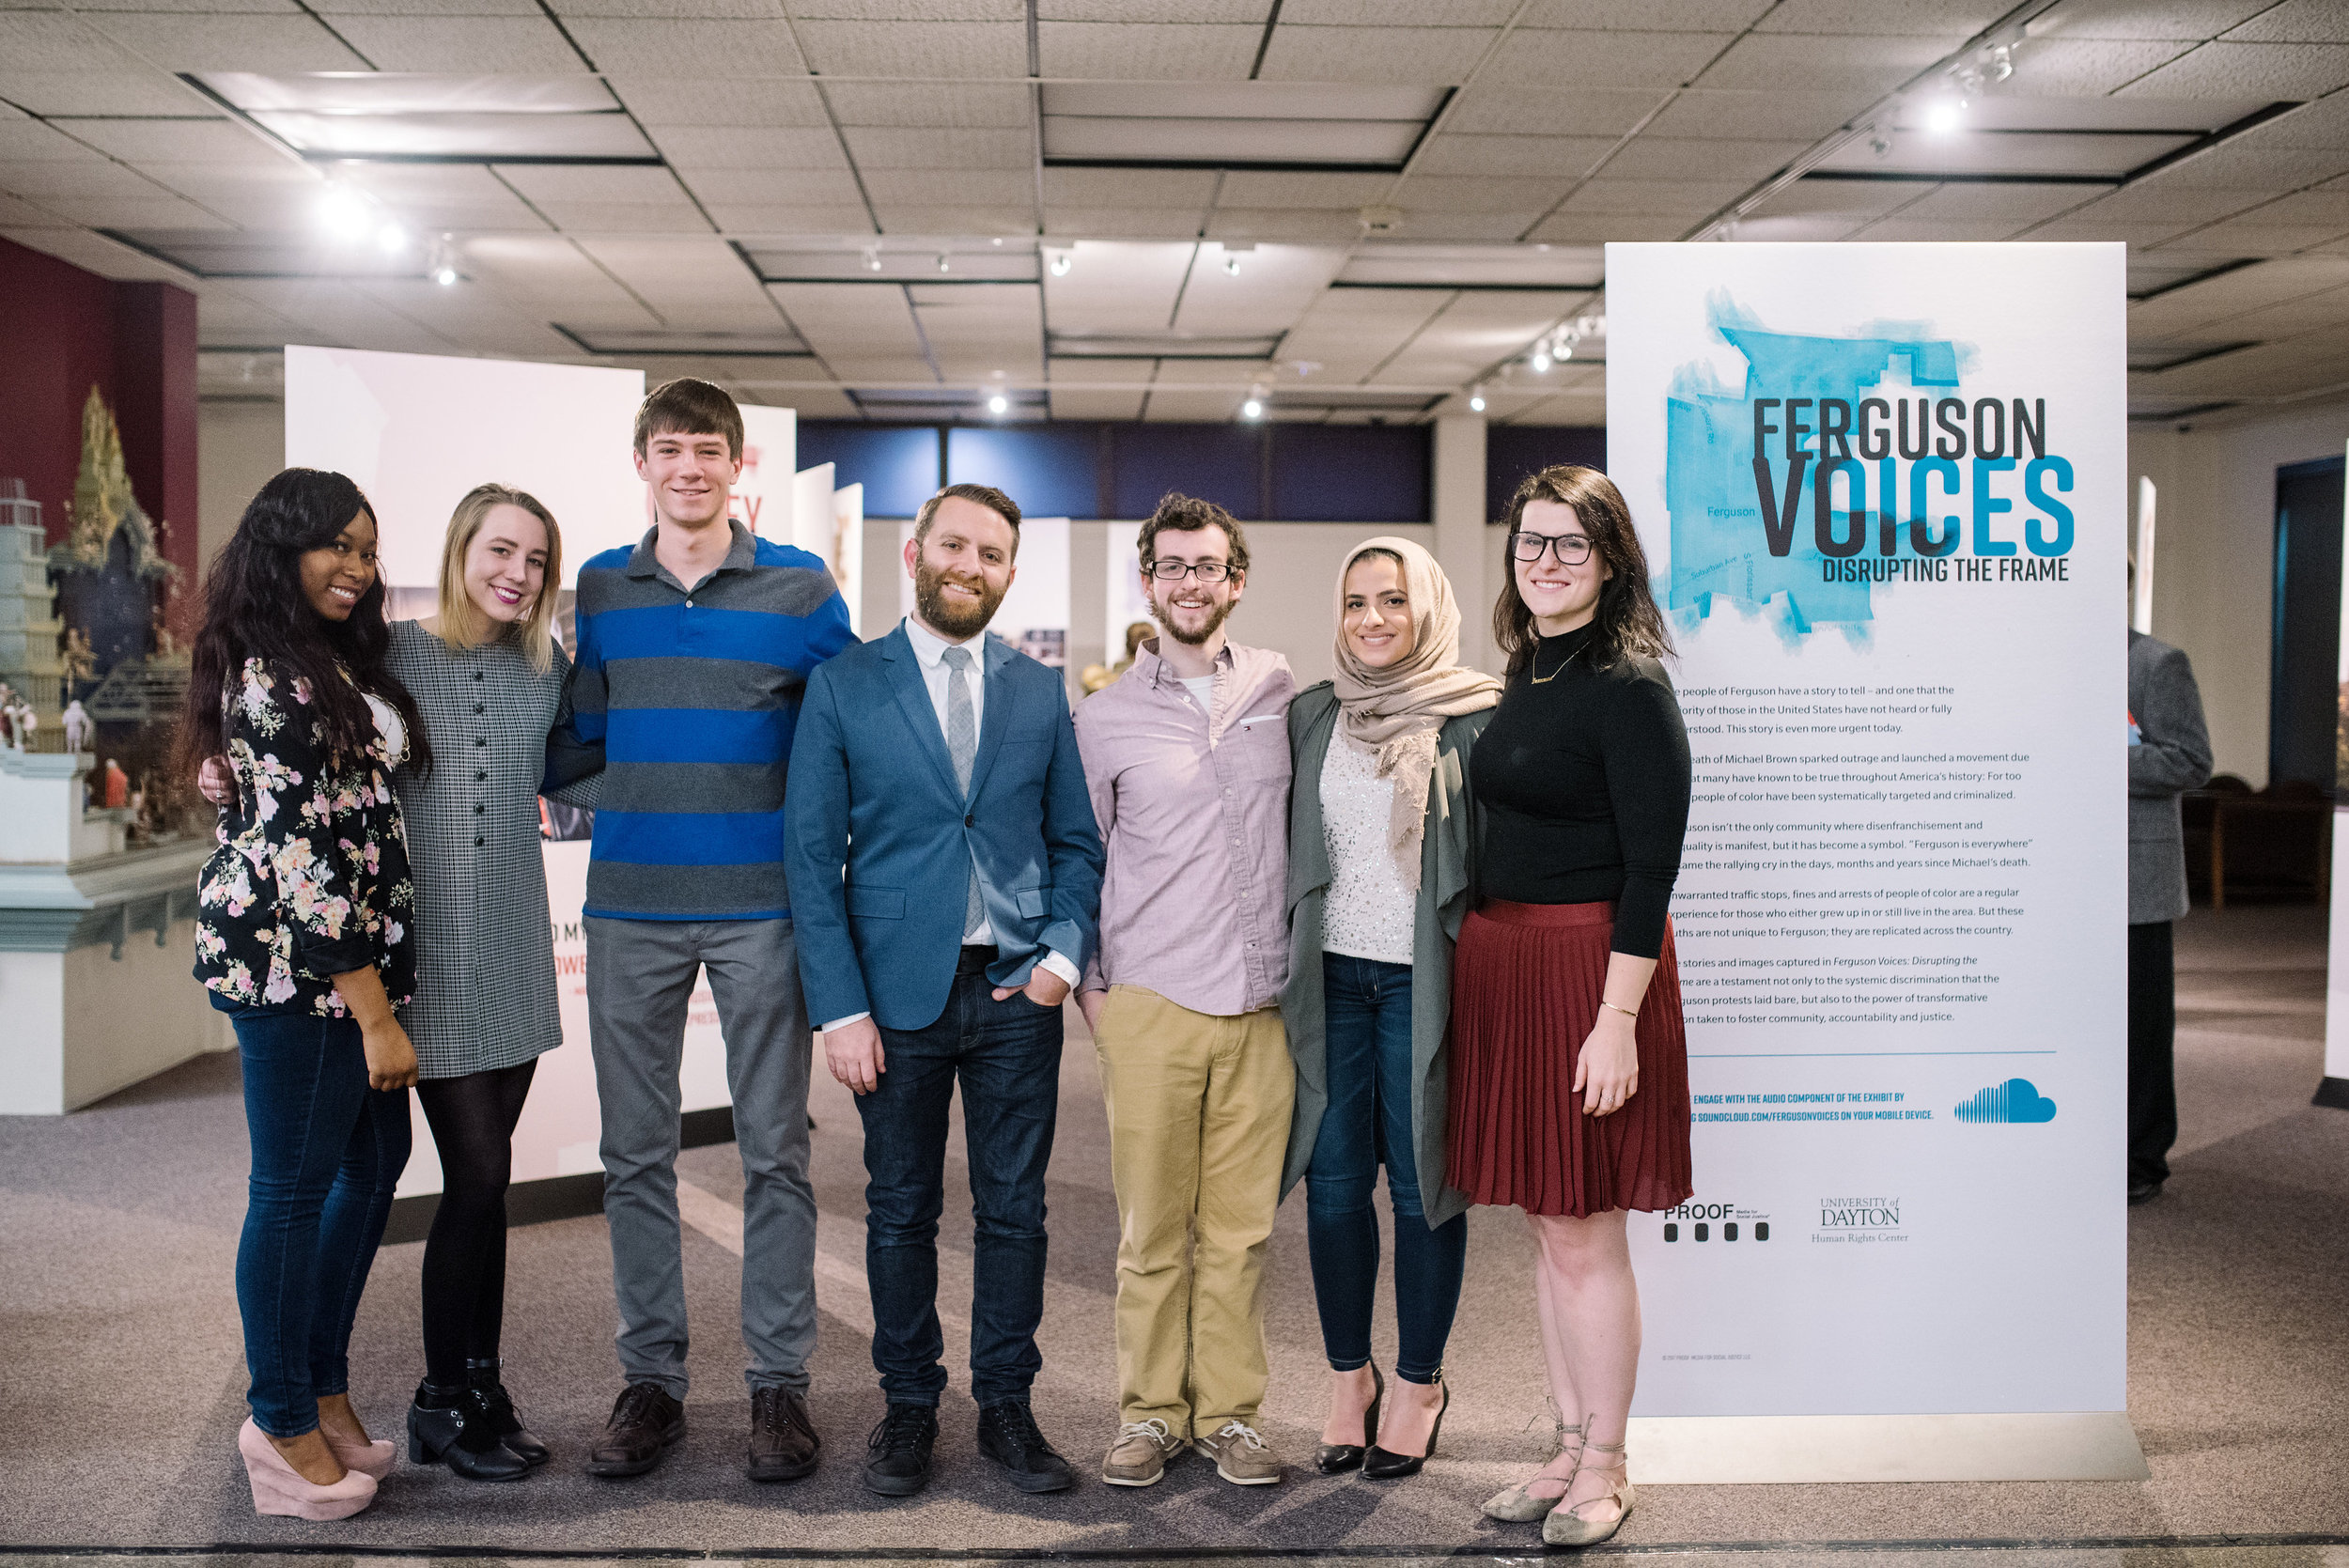 Joel Pruce (centre) with students from The Moral Courage Project at the University of Dayton's Human Rights Centre, at the launch of  Ferguson Voices: Disrupting the Frame  at The University of Dayton, January 2017